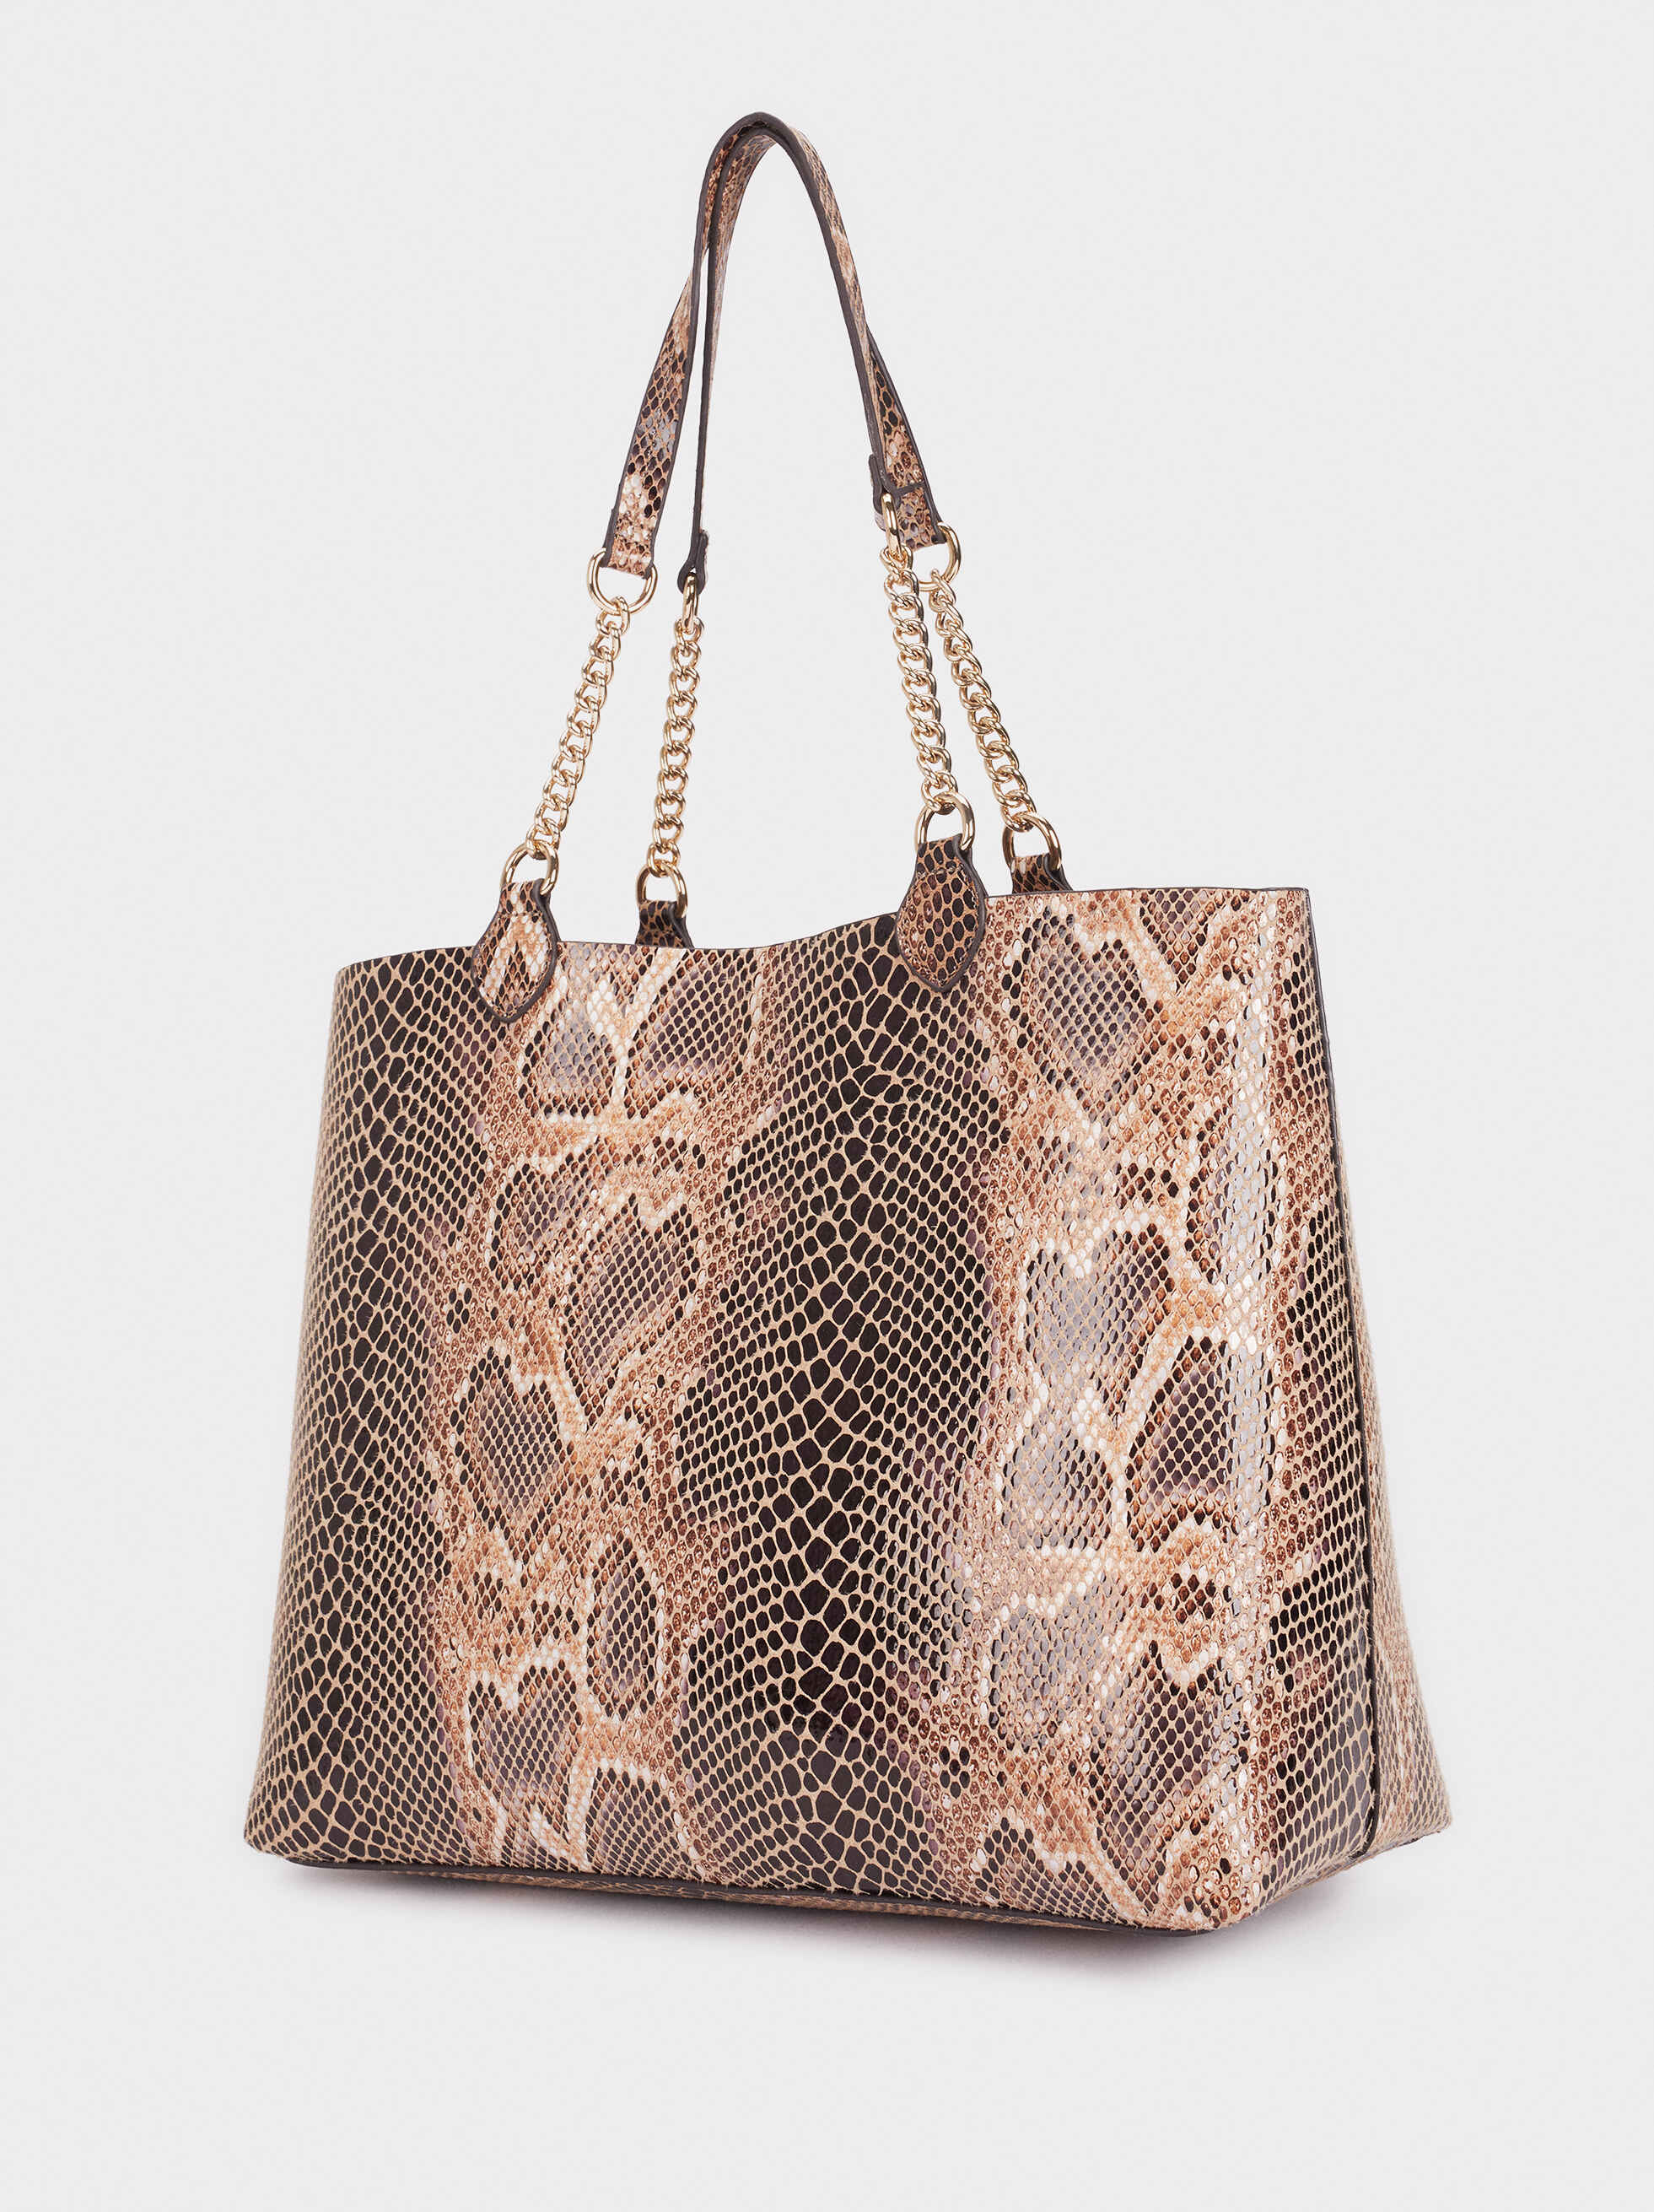 Embossed Animal Print Tote Bag, Beige, hi-res